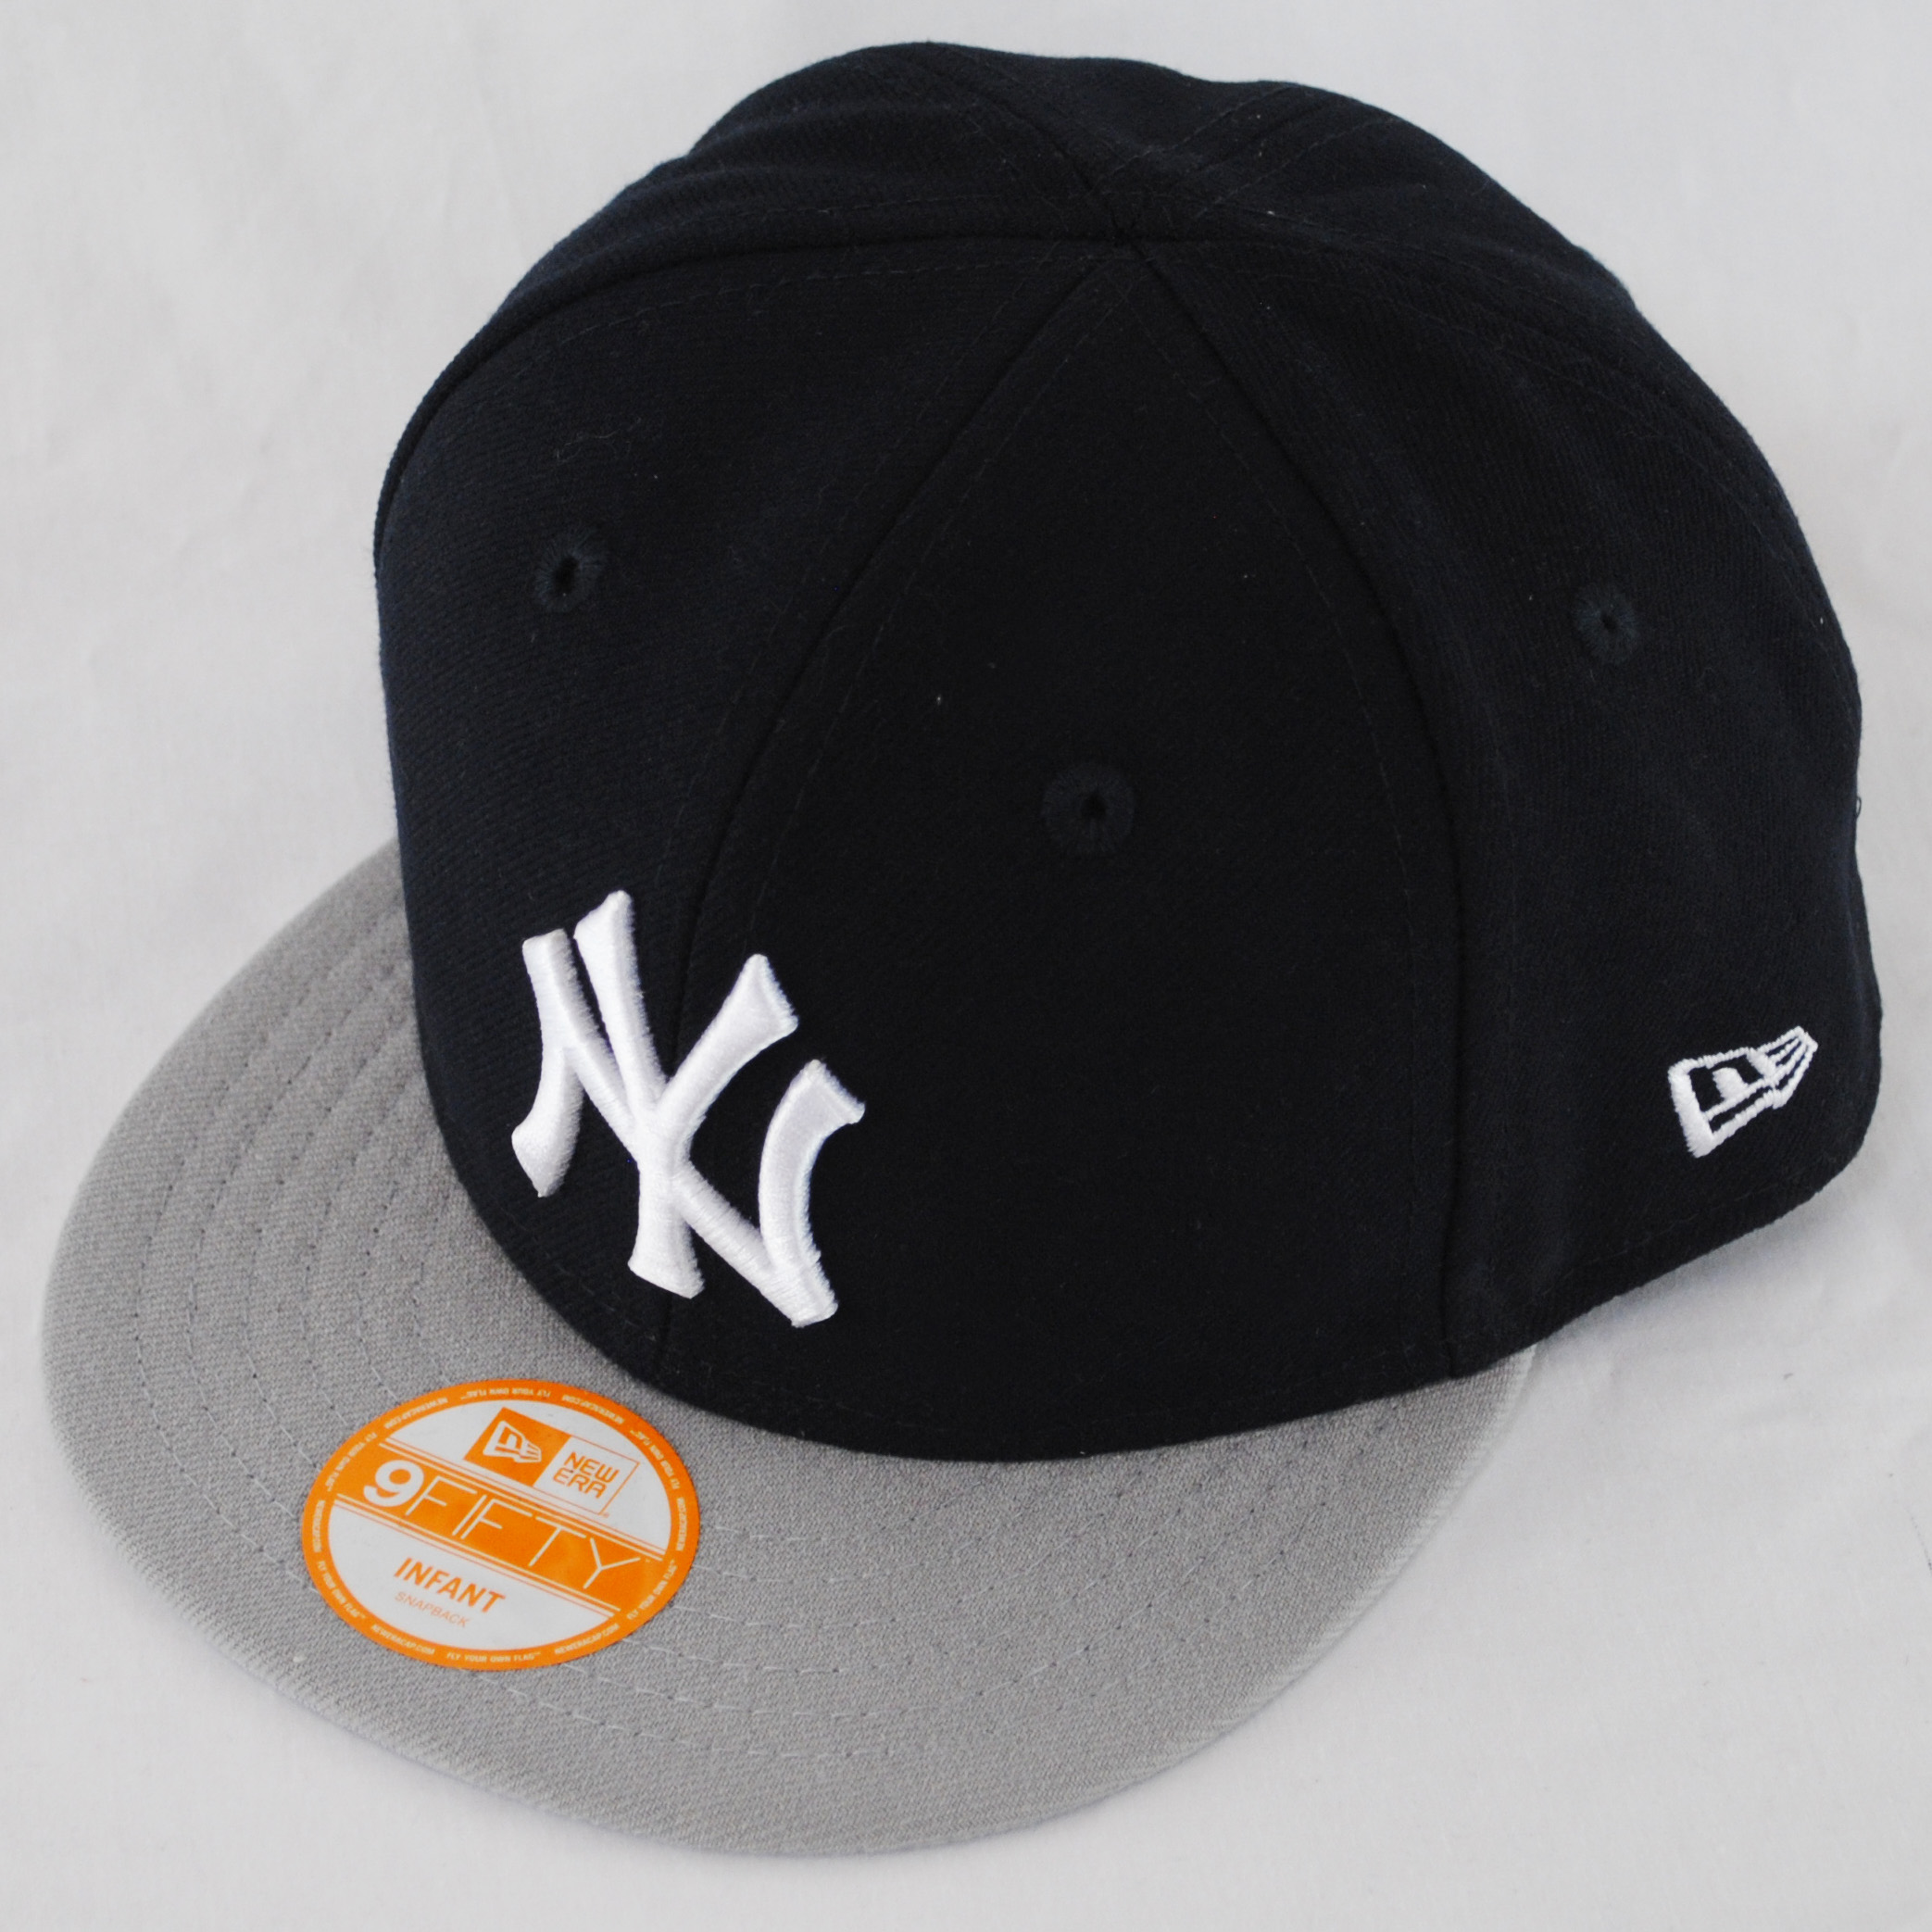 New Era 9fifty My First 1st Infant NY Yankees LA Braves Baby Kids ... 01a3f87c639